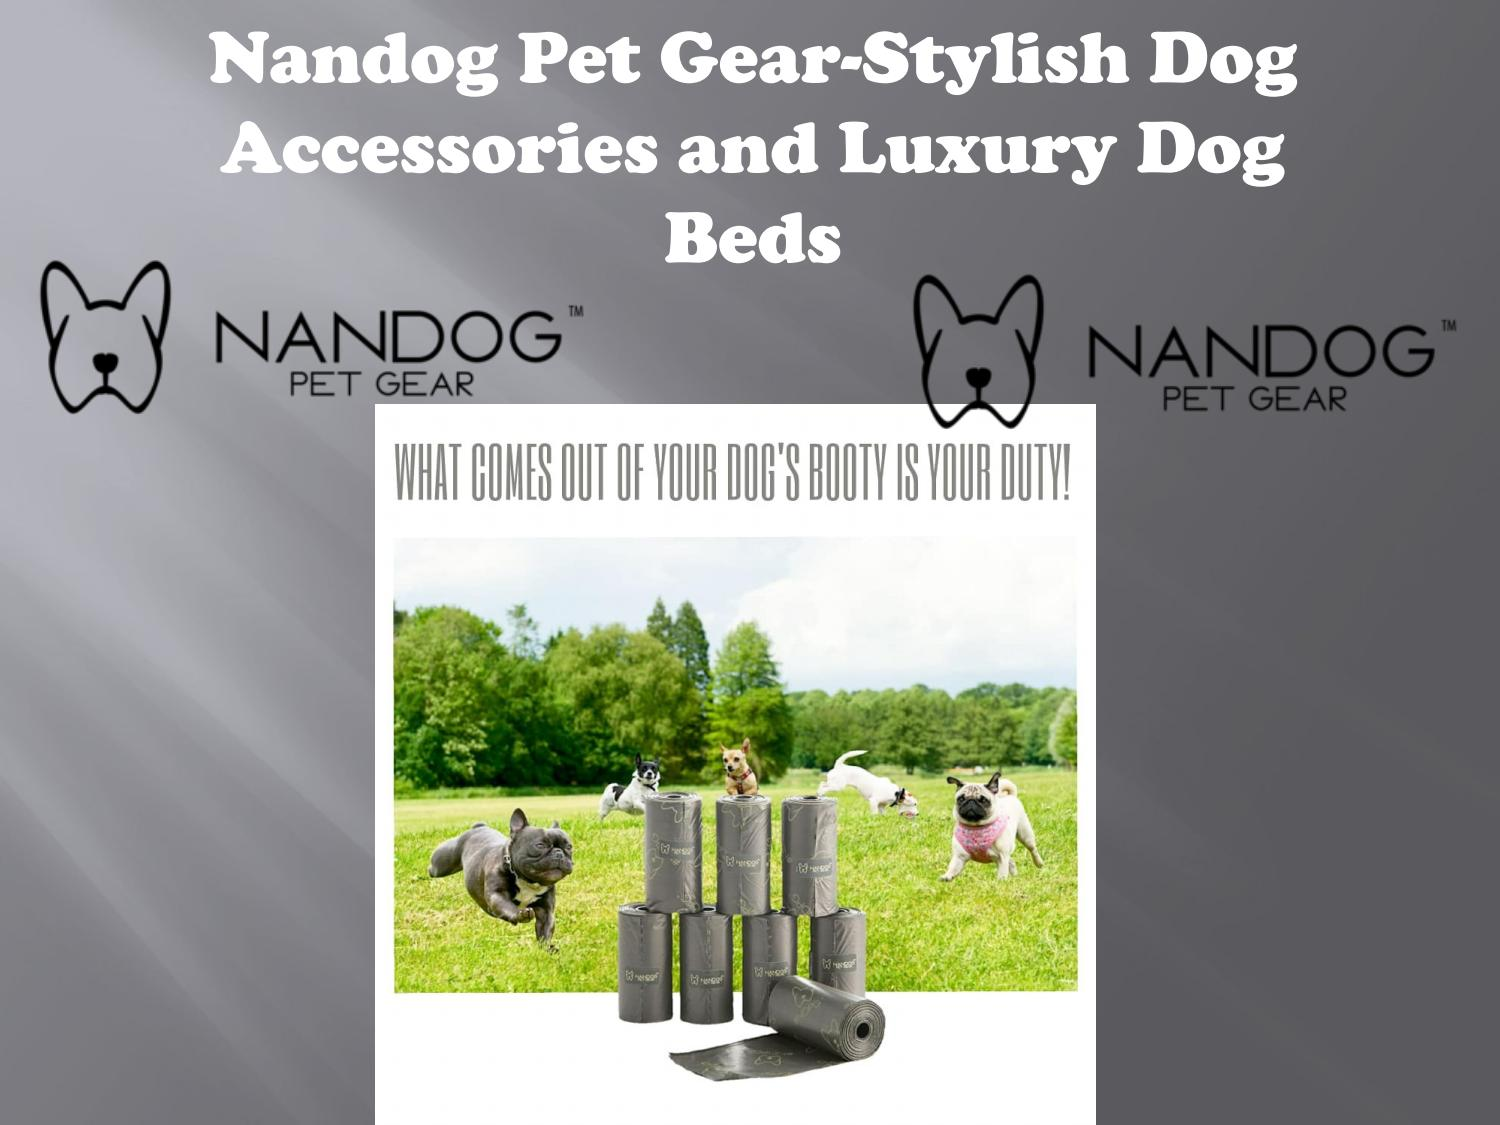 Nandog Pet Gear-Stylish Dog Accessories and Luxury Dog Beds